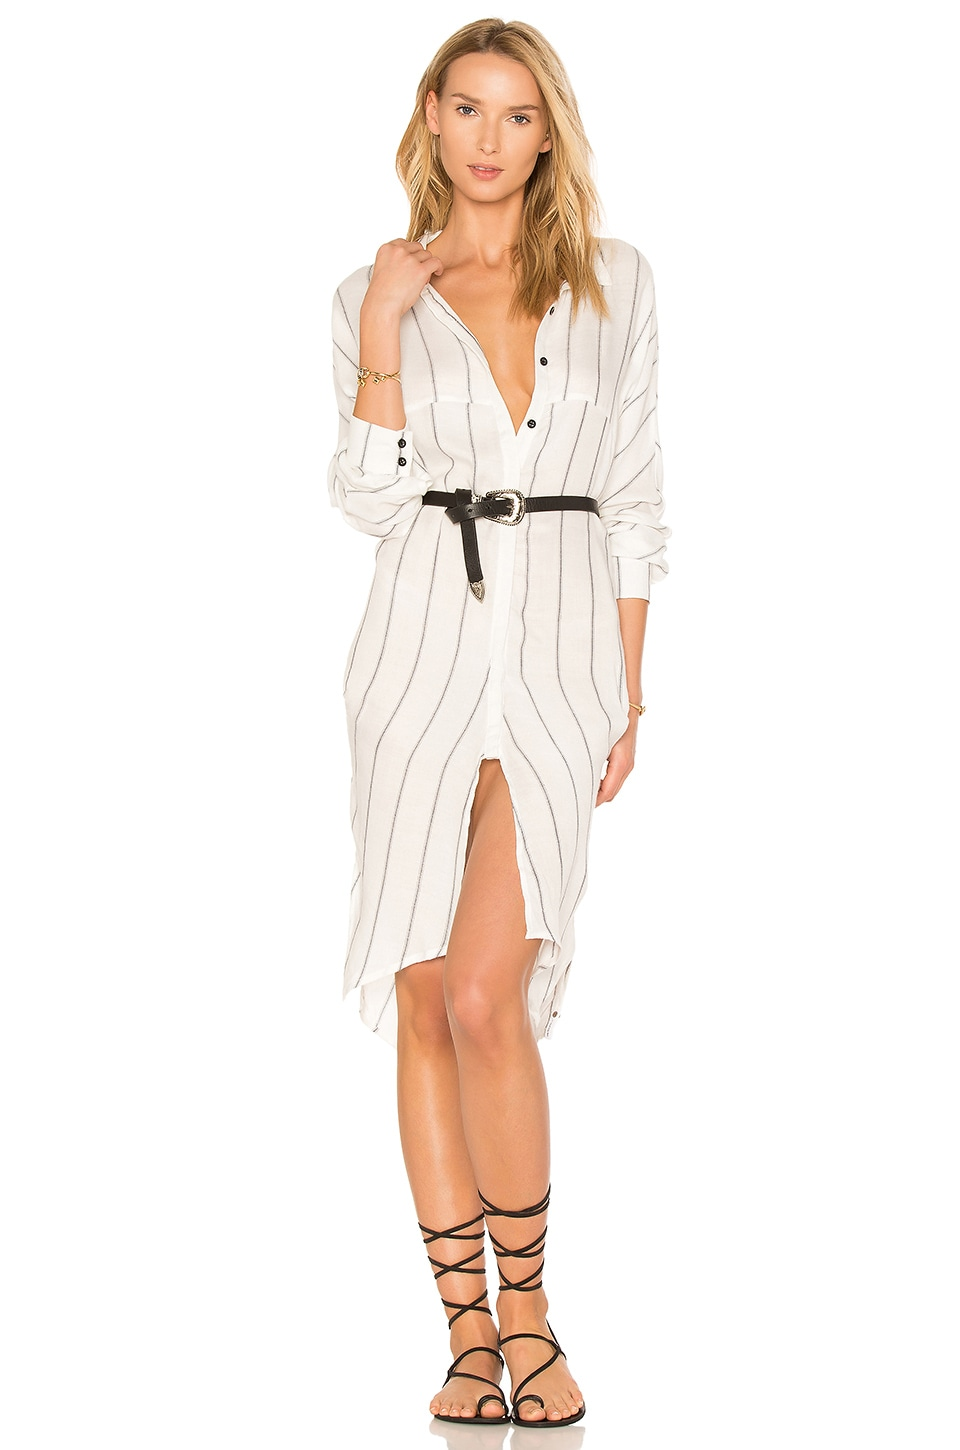 One Teaspoon East Village Shirt Dress in White & Black